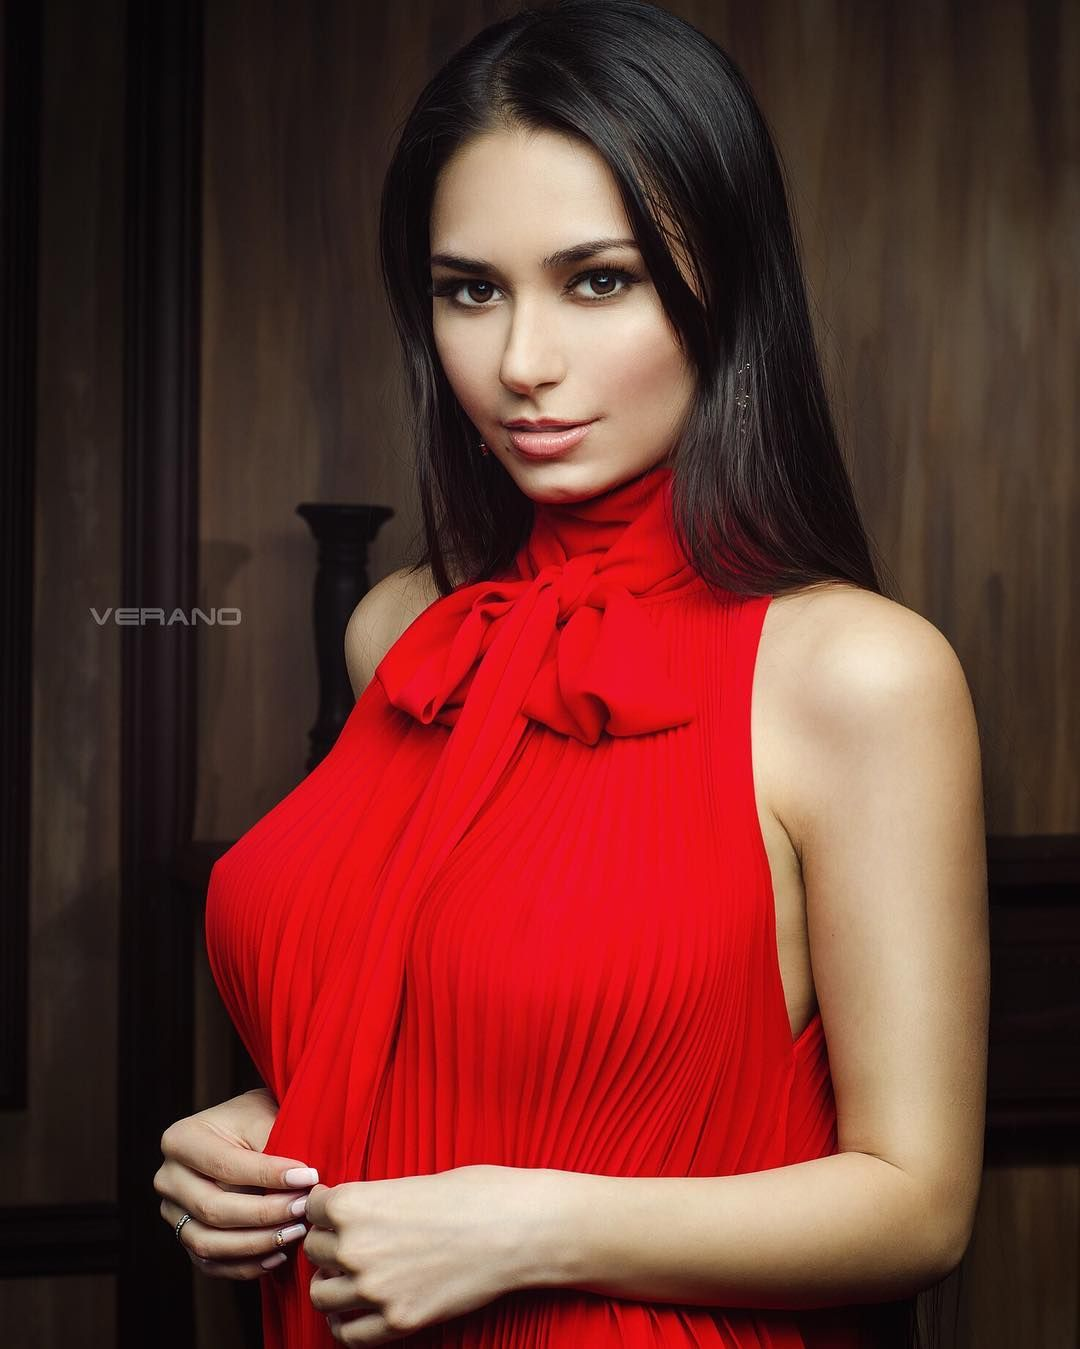 Helga Lovekaty nudes (42 pics), hacked Fappening, YouTube, butt 2020